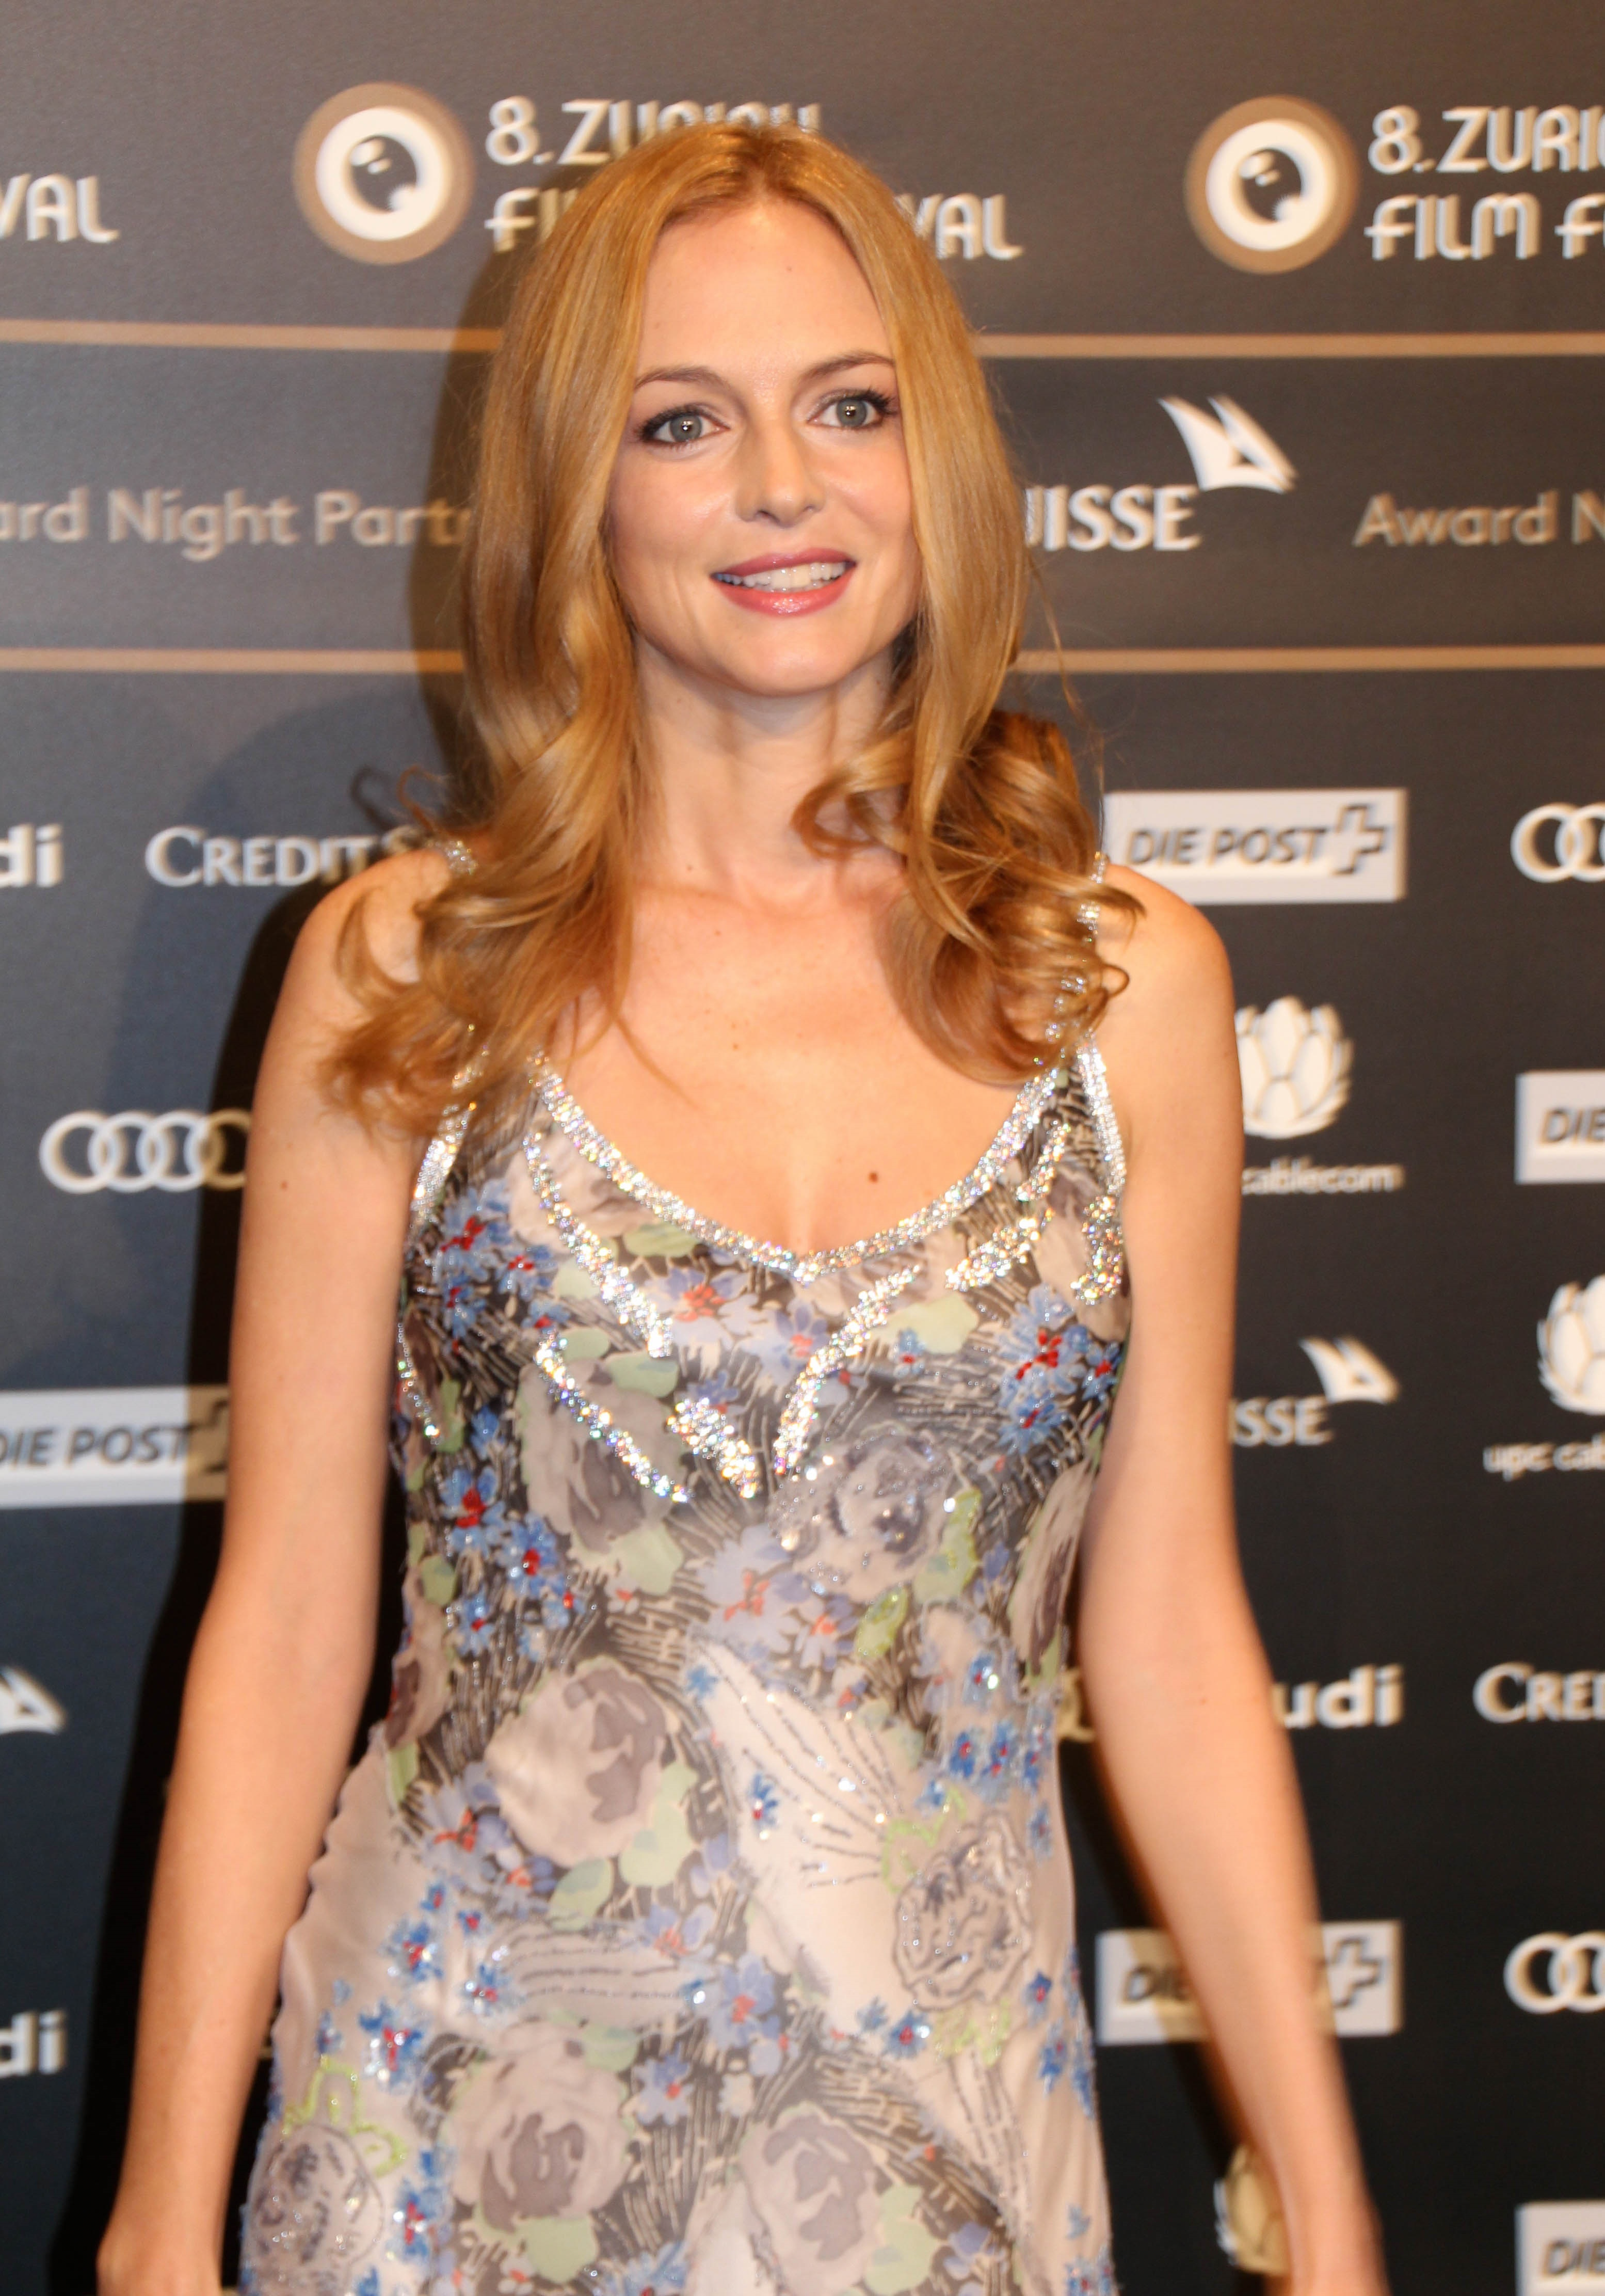 Heather Graham Hot Photoshoots And Hd Wallpapers Gallery-8228